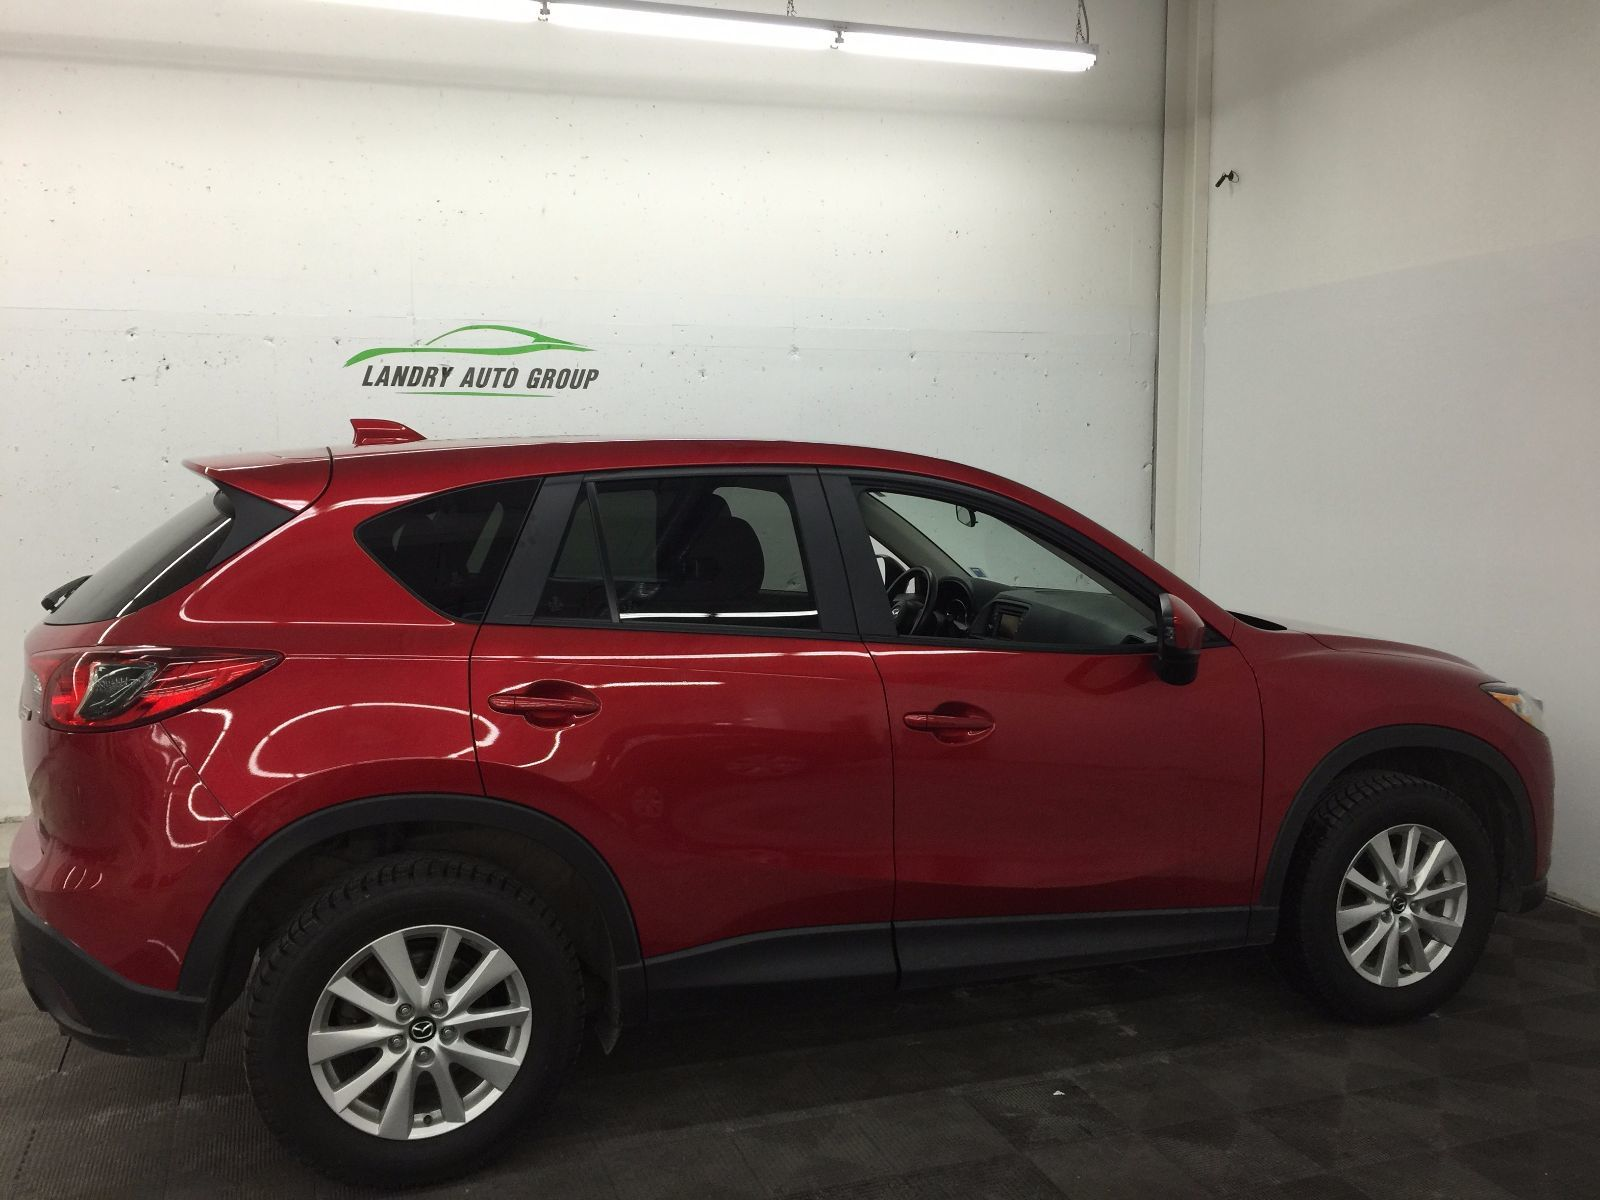 used 2014 mazda cx 5 gs in kentville used inventory kentville mazda in kentville nova scotia. Black Bedroom Furniture Sets. Home Design Ideas